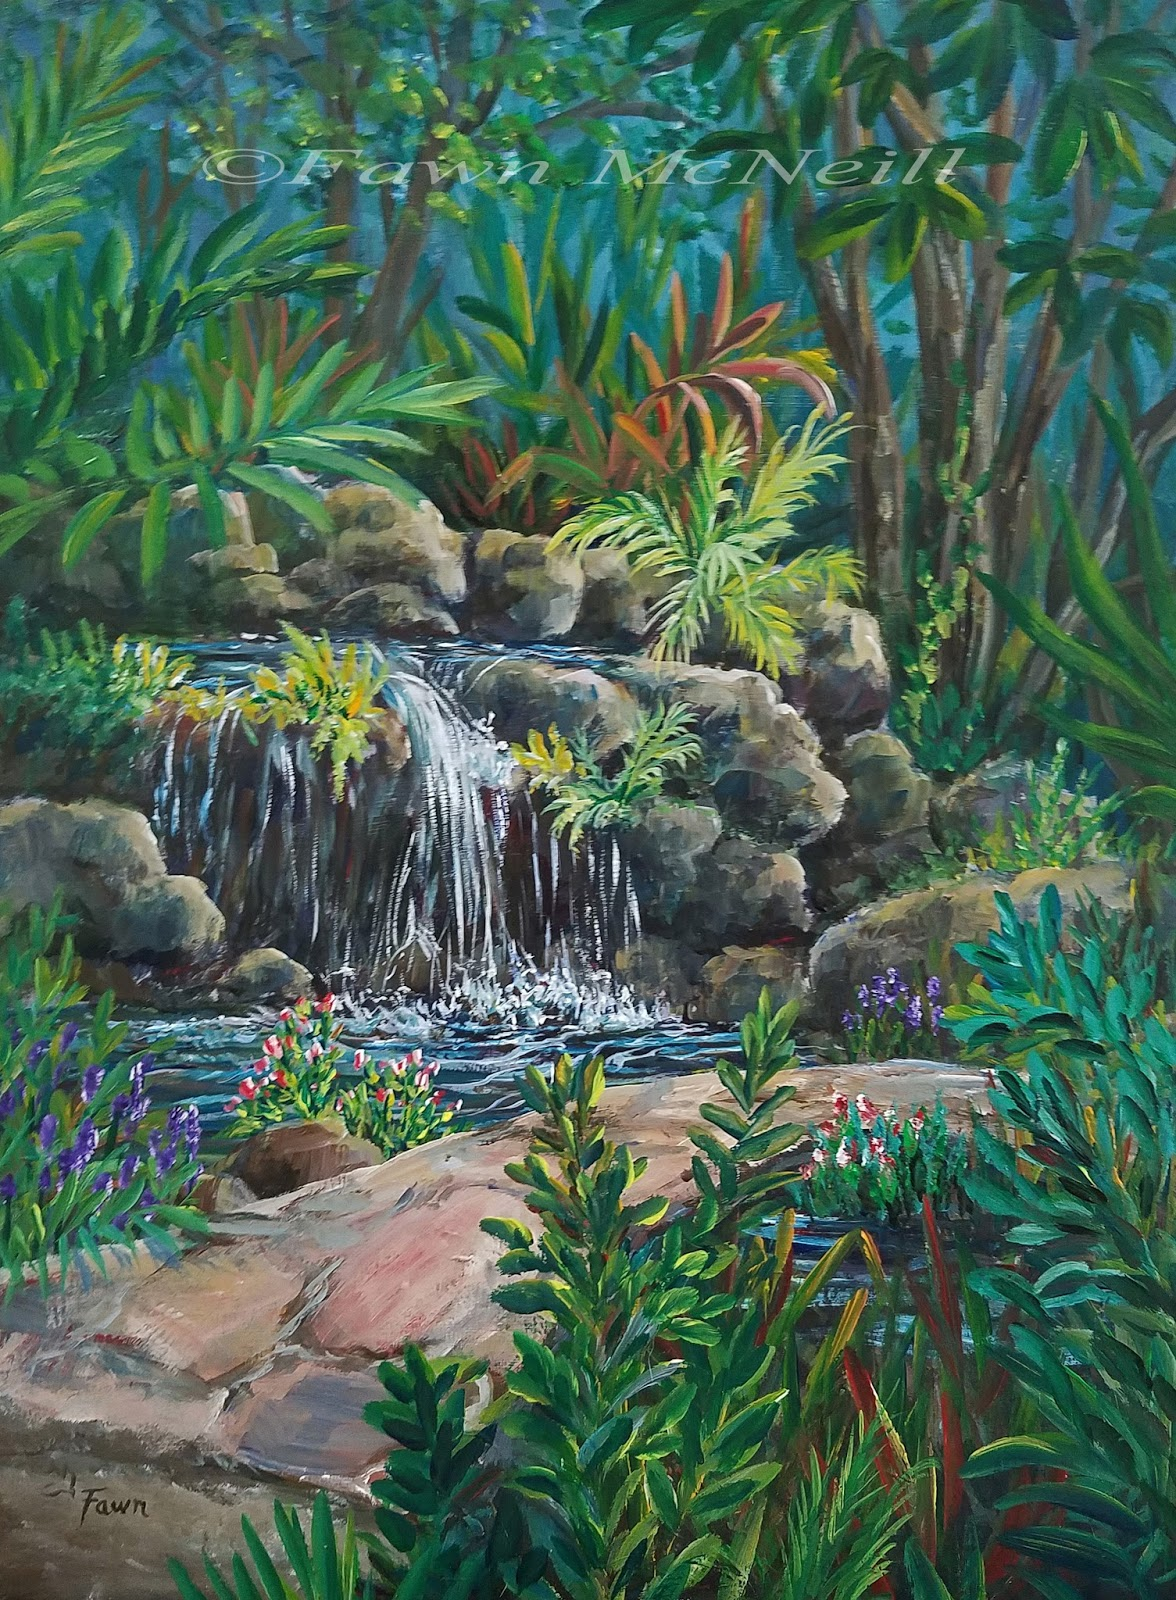 Paintings Of Cobblestone Paths : Fawn s paintings garden falls plein air stone path